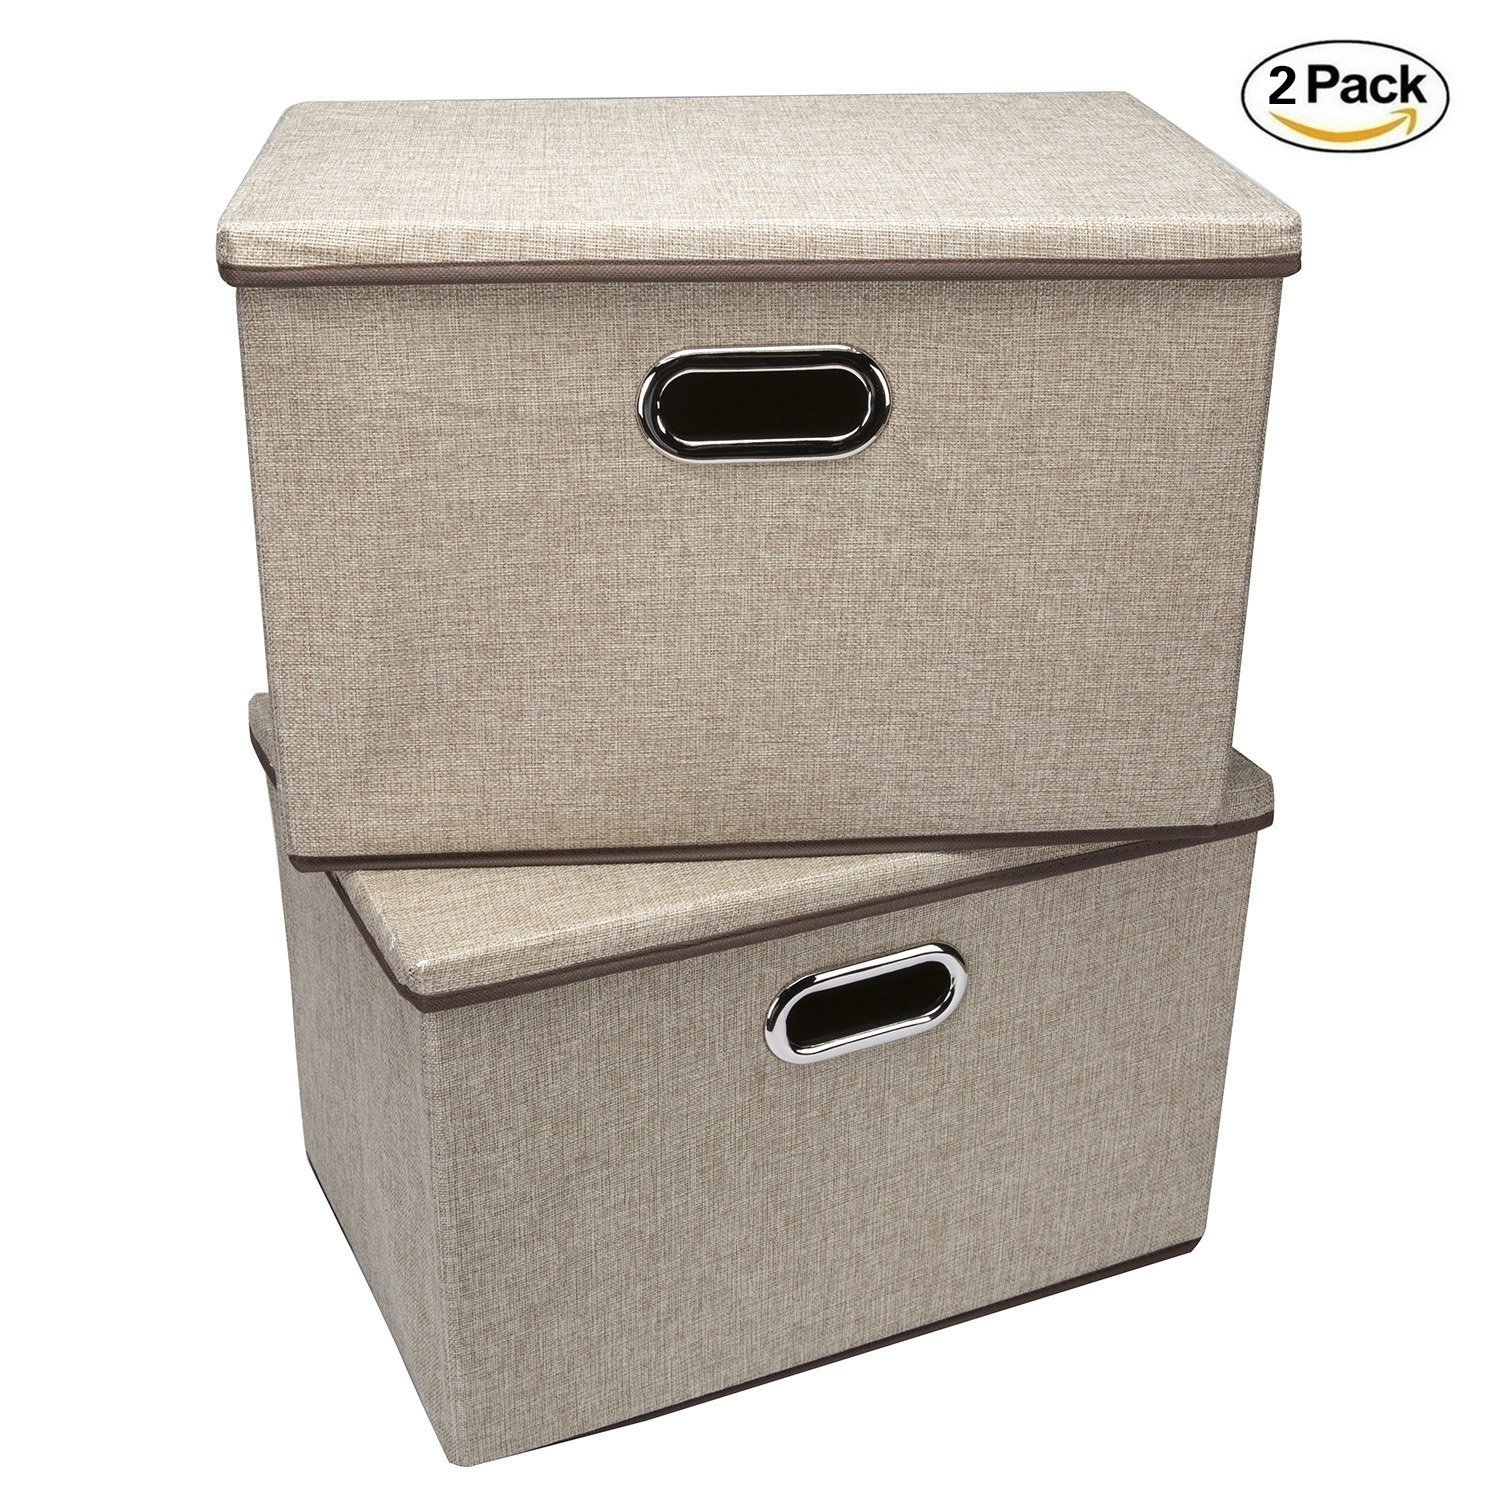 Foldable Storage Containers with Removable Lid and Handles,Storage box Storage cubes Organizer,Set of 2 (Khaki)